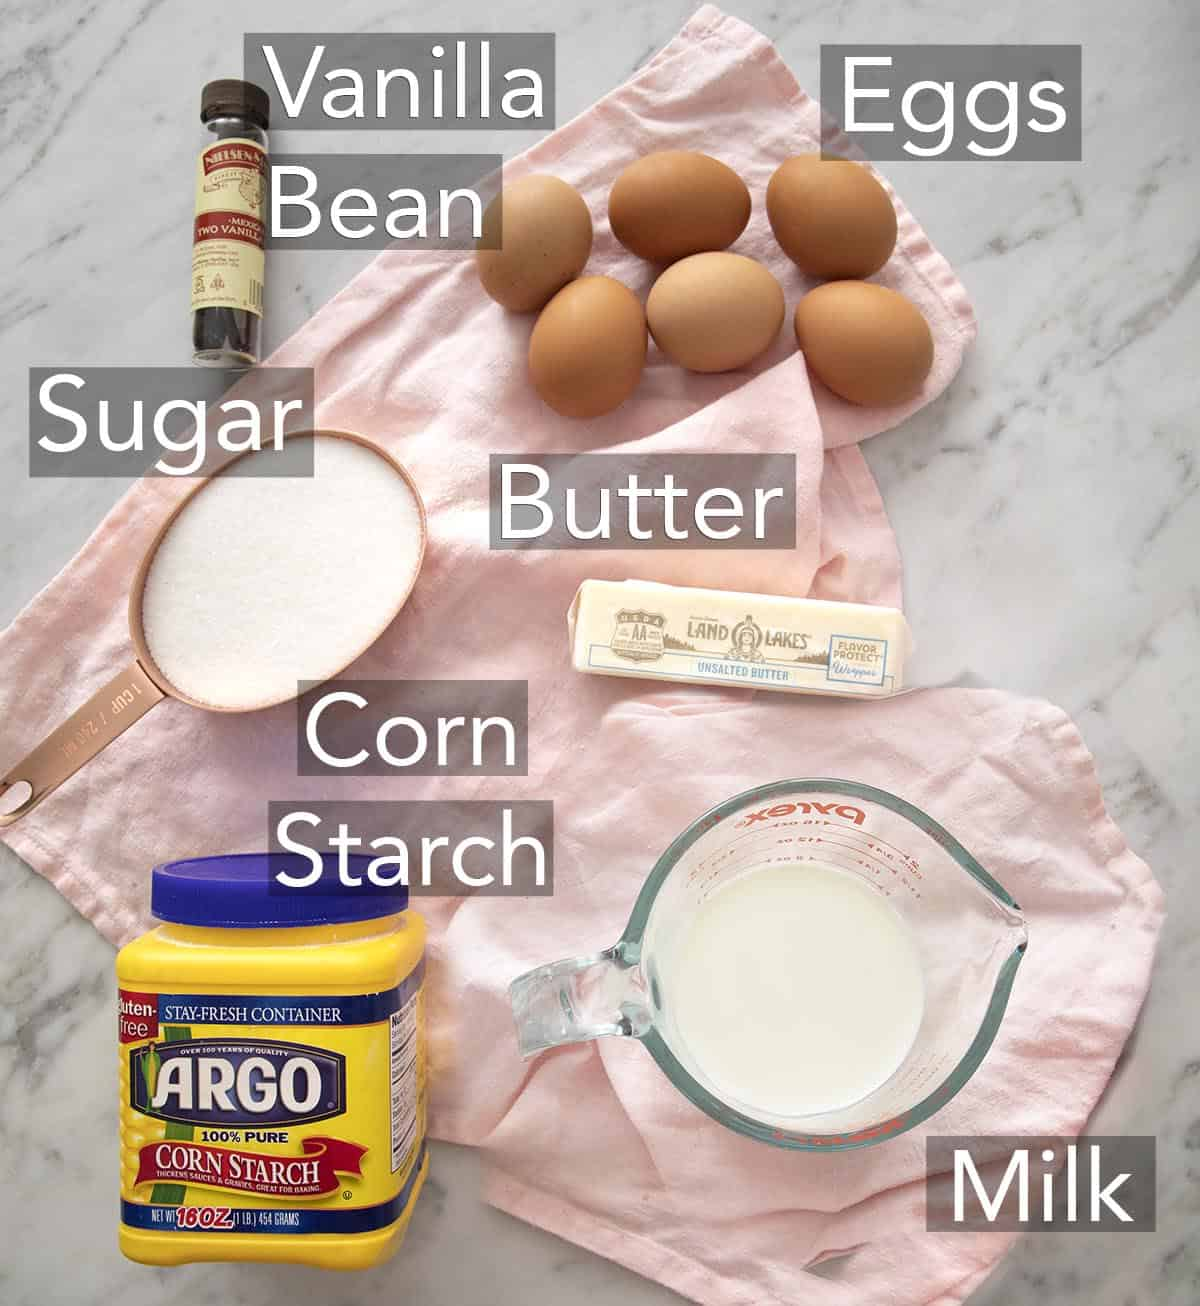 Ingredients for making pastry cream on a counter.